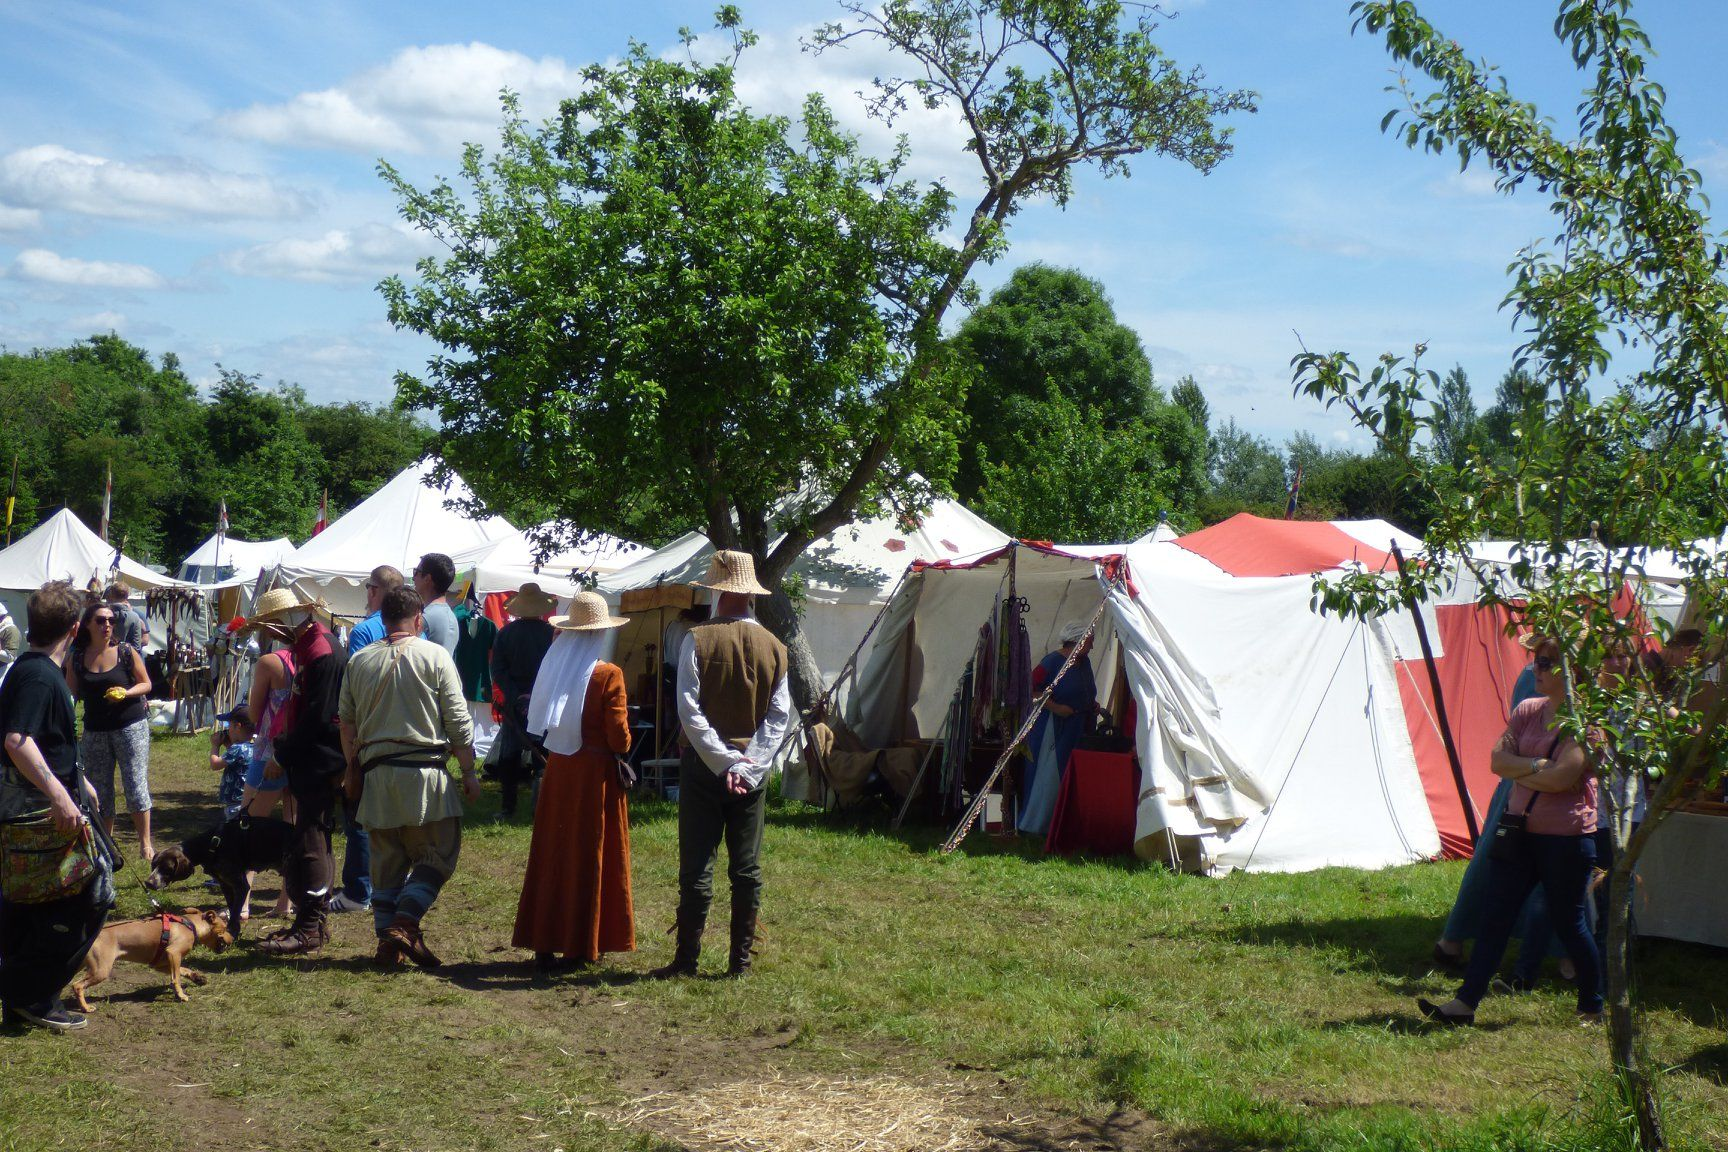 Templecombe Medieval Pagaent